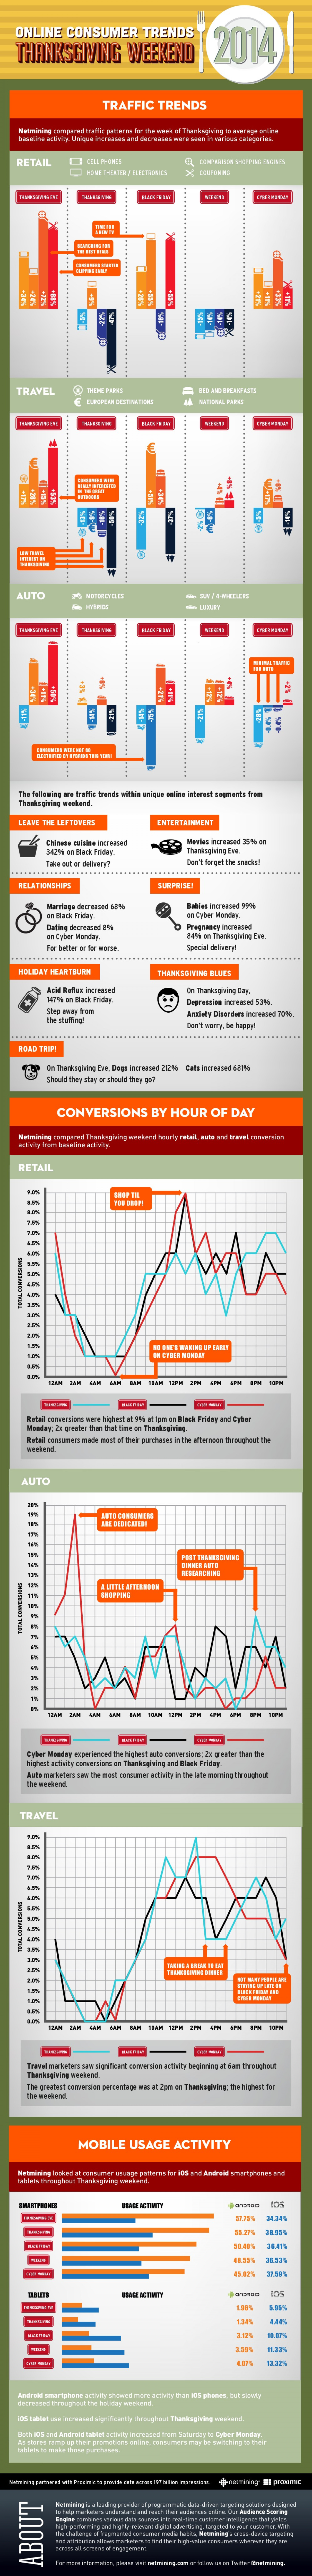 Thanksgiving Weekend 2014 Infographic